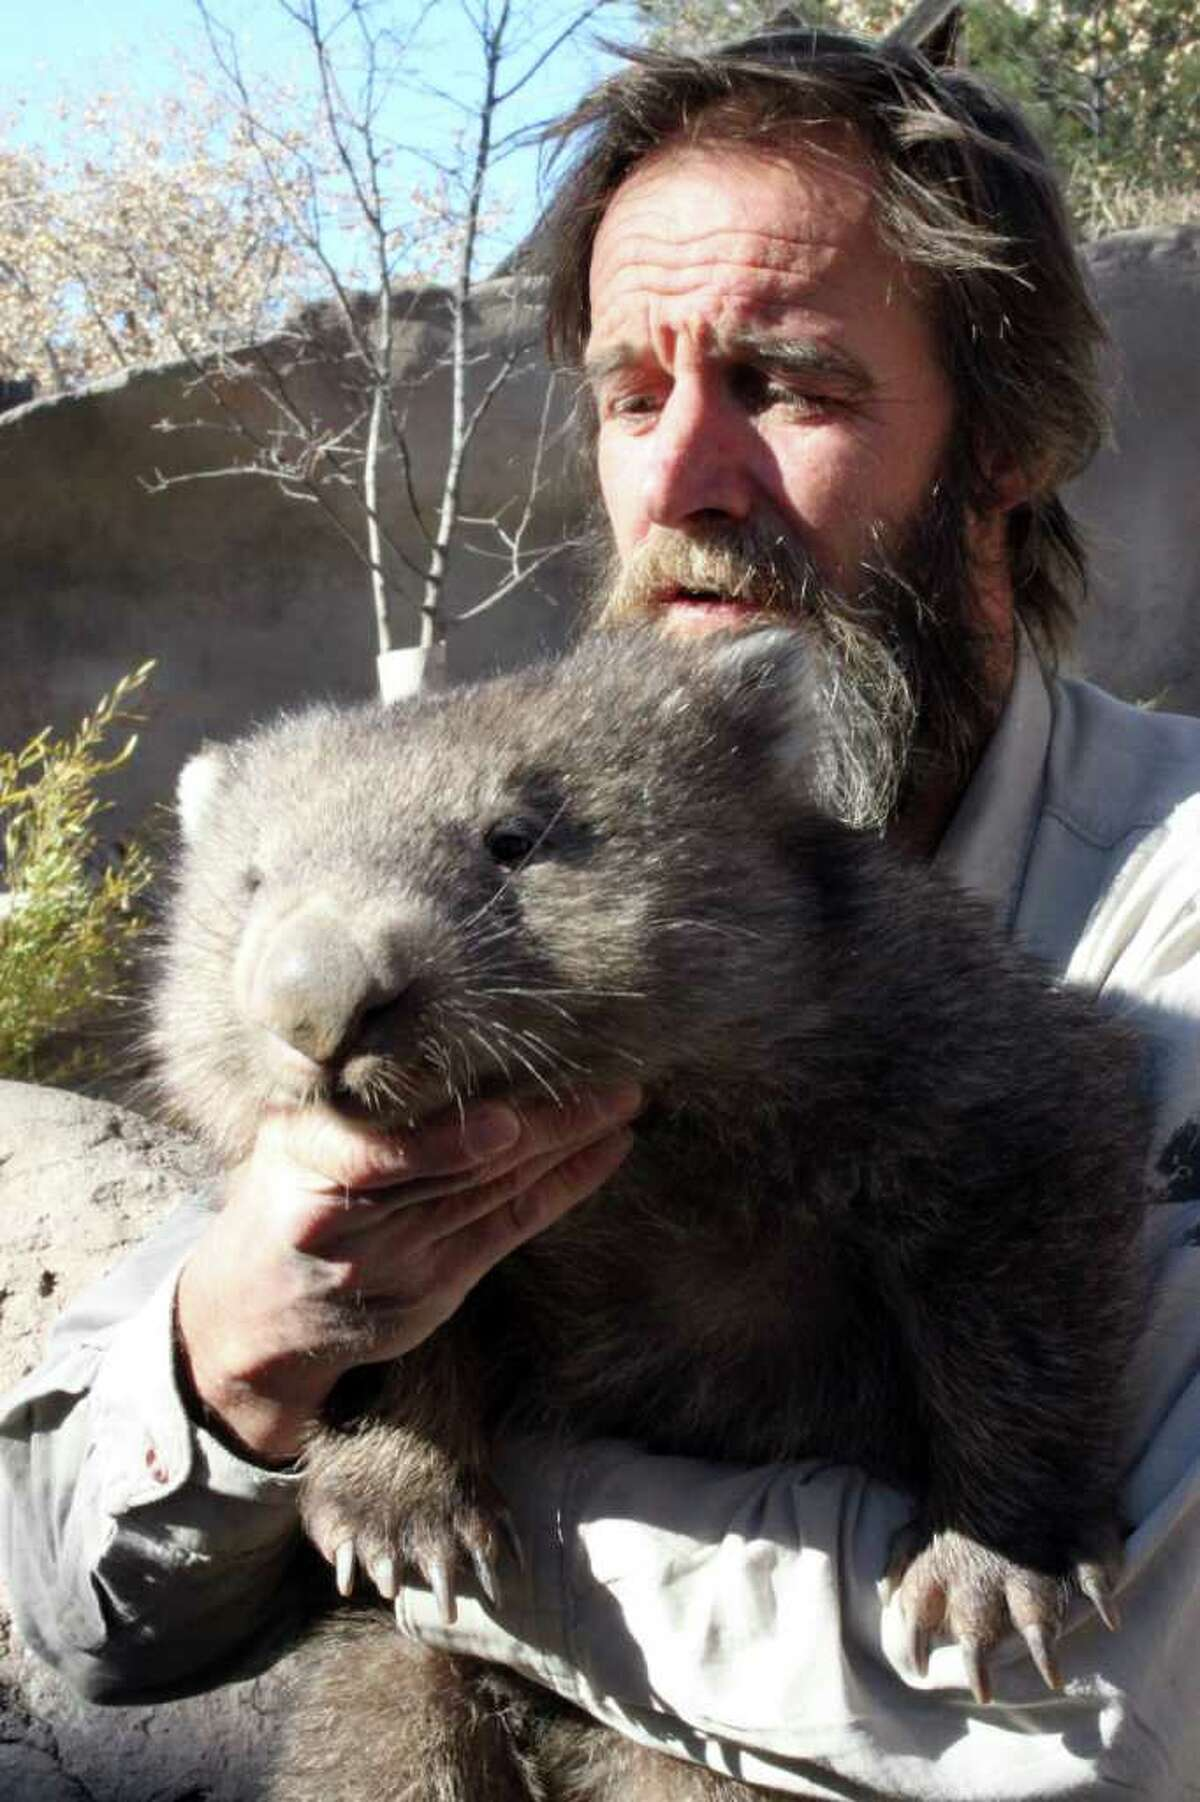 Androo Kelly of the Trowunna Wildlife Park in Australia holds Otto, a Tasmanian wombat, at the Albuquerque BioPark Zoo's newest exhibit in Albuquerque, N.M., on Thursday, Dec. 9, 2010. There are about a half-dozen other species of wombats in zoos around the country, but Otto and the two adult wombats that arrived in Albuquerque last week are the only Tasmanian wombats in North America.